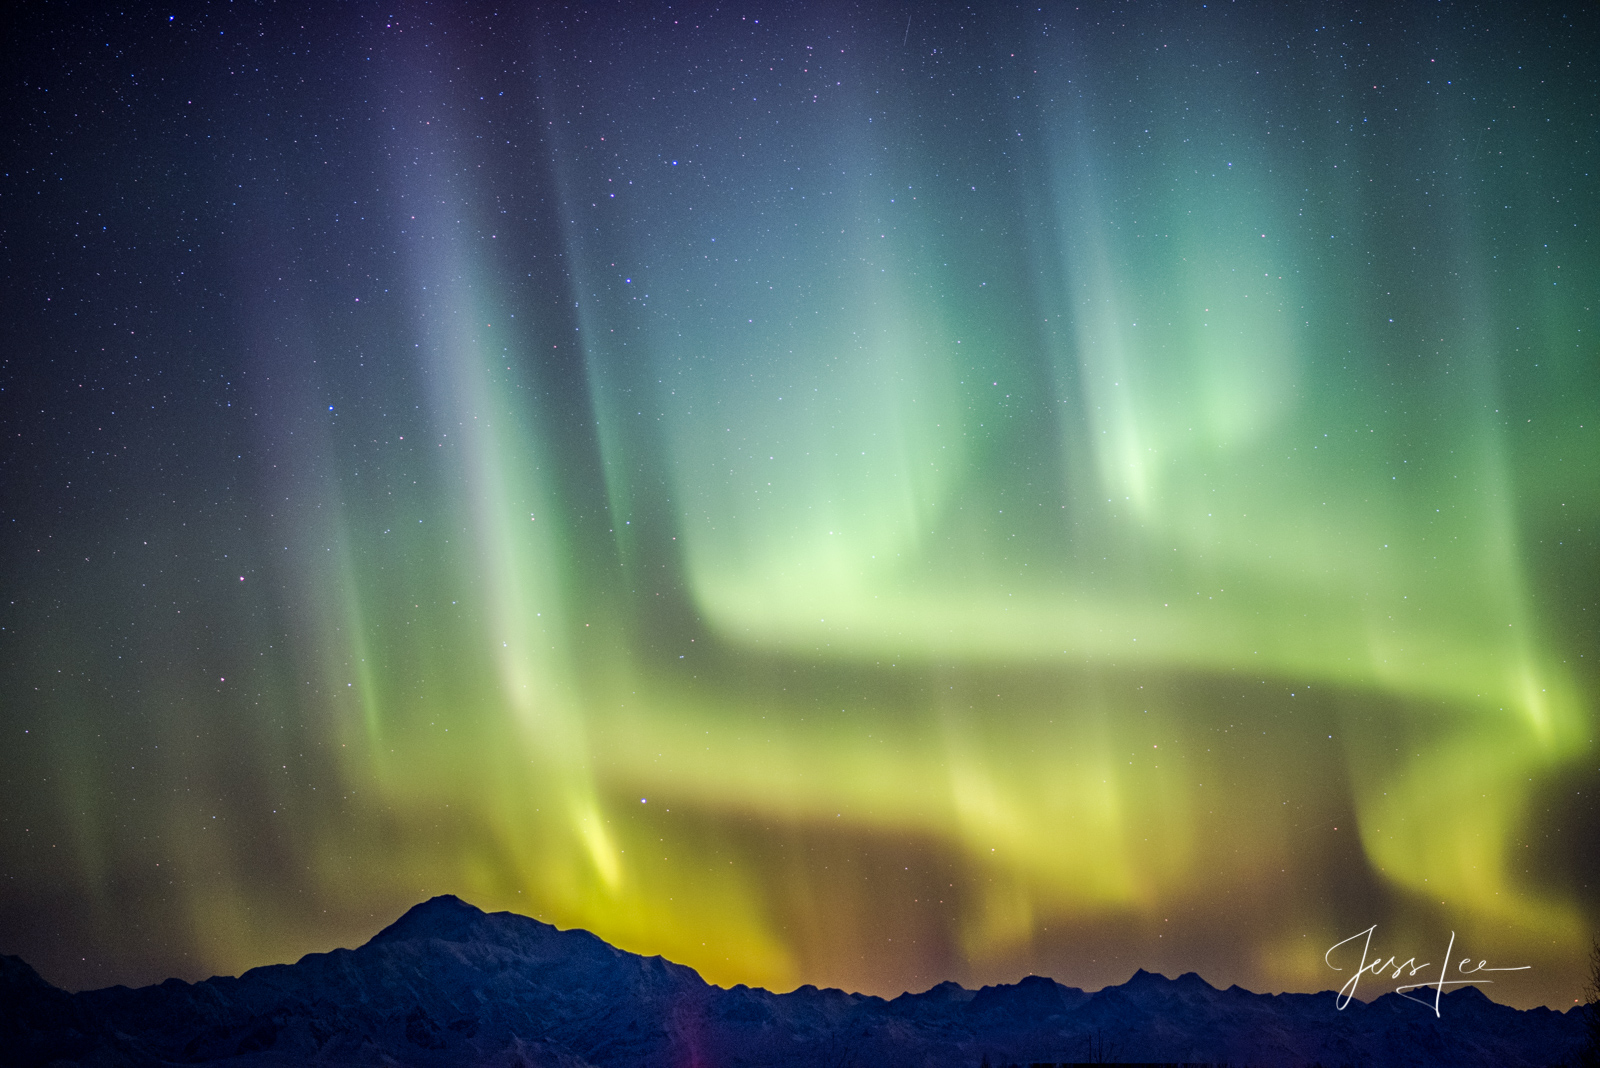 Limited Edition of 50 Exclusive high-resolution Museum Quality Fine Art Prints of the Northern Light Dancing over Denali. Photos...